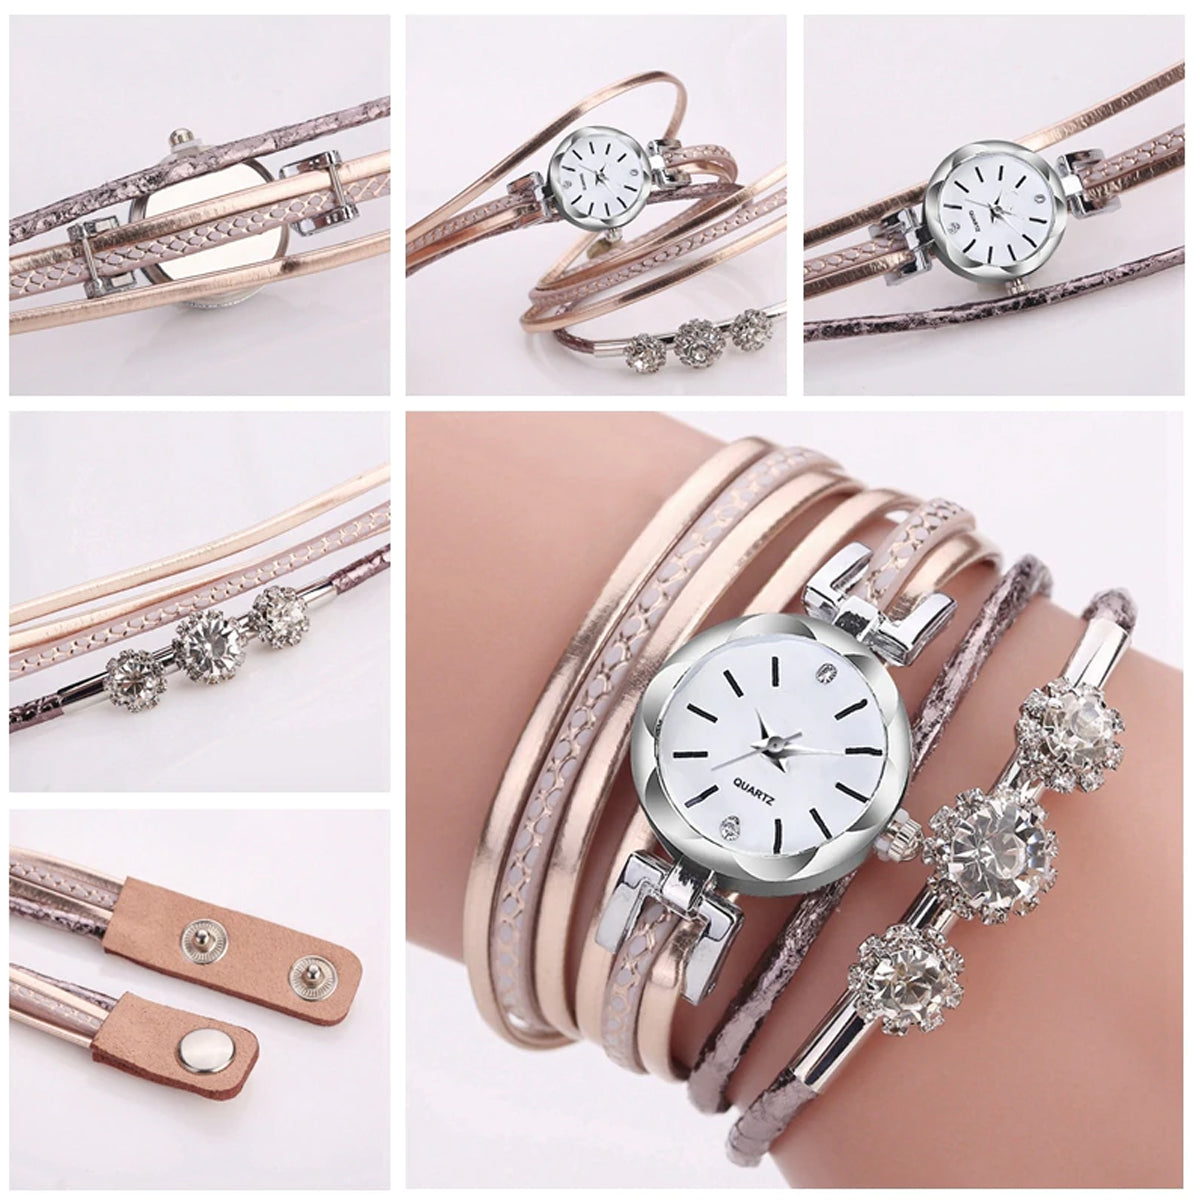 Fashion Casual Analog Quartz Watch For Women-JW035